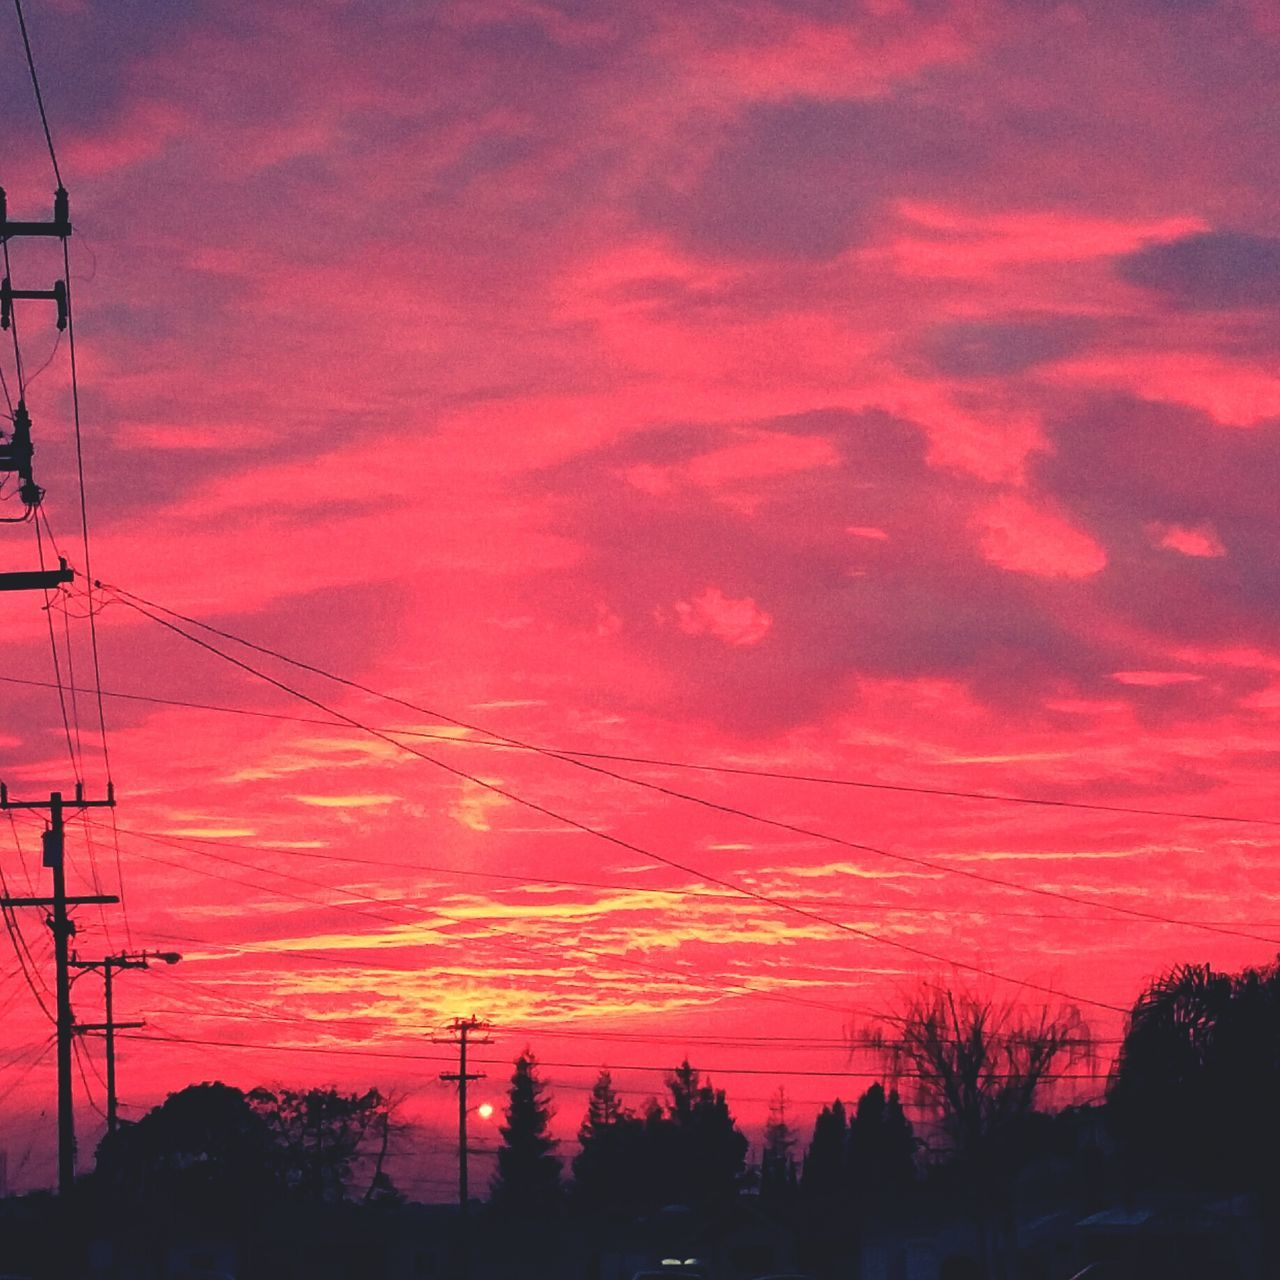 sunset, silhouette, sky, tree, cloud - sky, power line, power supply, orange color, electricity pylon, cable, electricity, no people, nature, beauty in nature, connection, low angle view, scenics, outdoors, fuel and power generation, tranquility, technology, telephone line, day